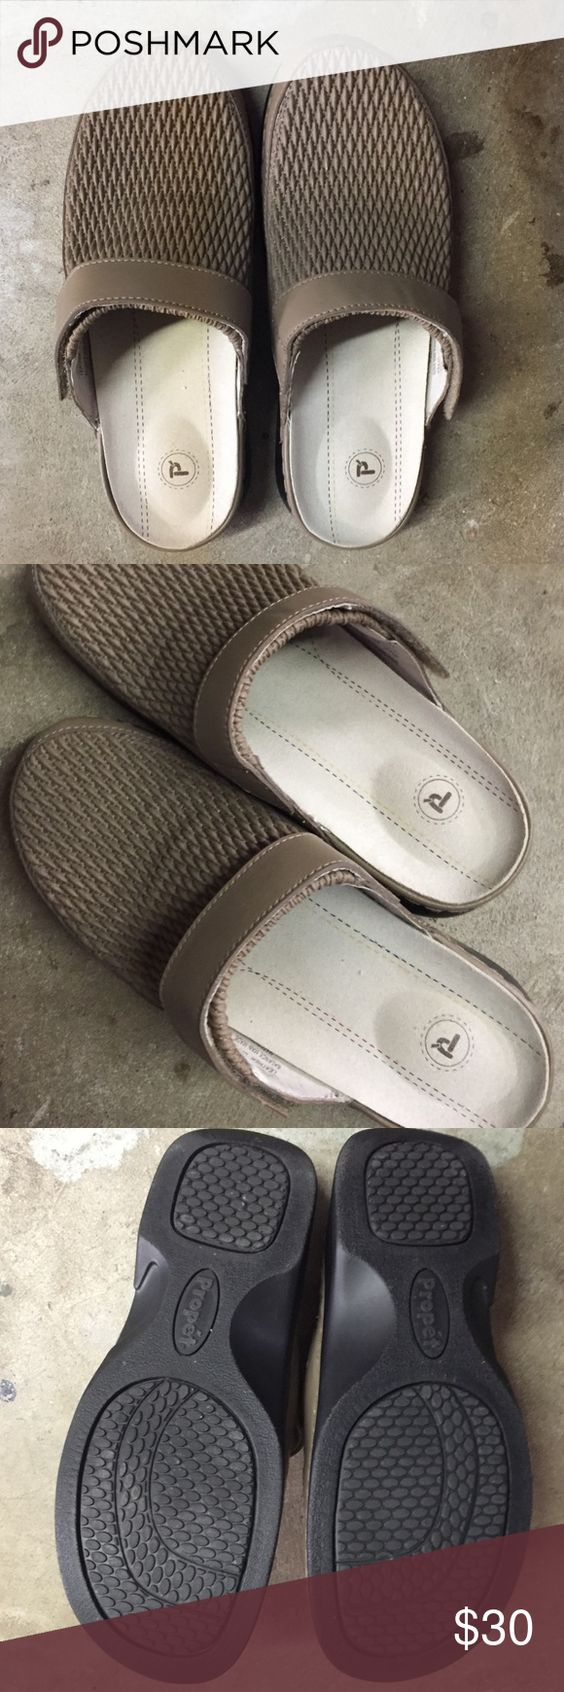 NWOT Propet tan clogs. Most comfortable shoe ever. NWOT Propet stretch tan leather clogs. Adjustable with Velcro. 2 inch wedge. In perfect condition. Propet Shoes Mules & Clogs